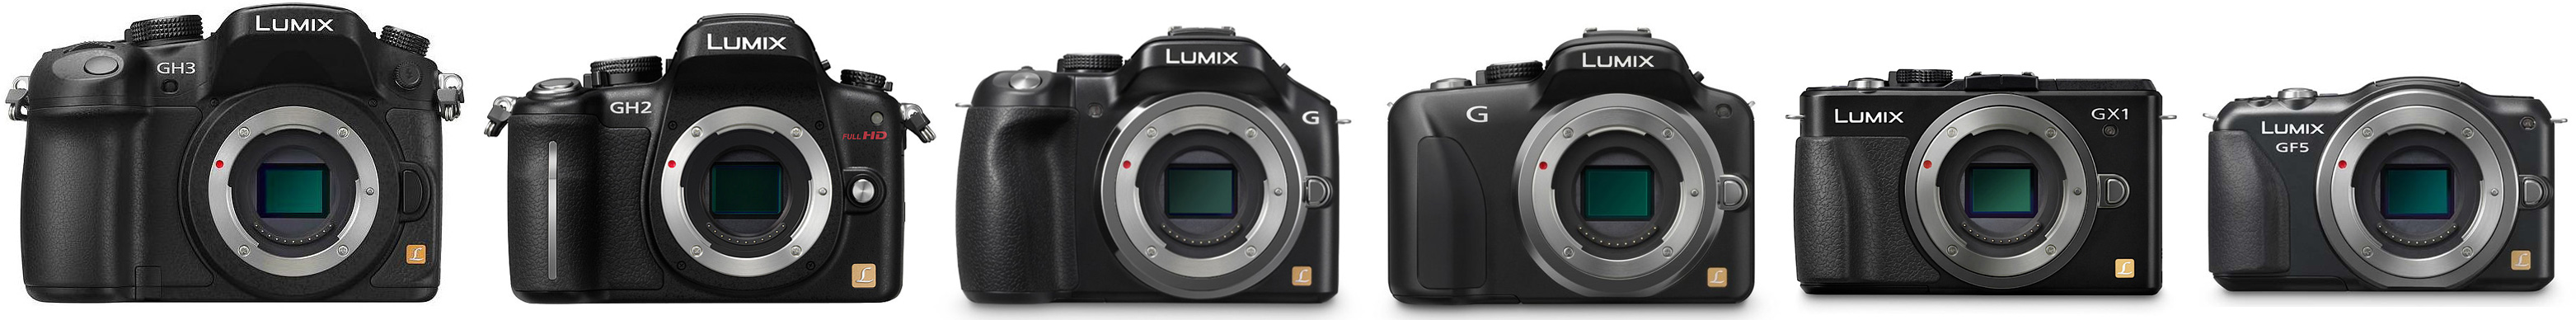 Panasonic Micro Four Thirds Cameras: GH3, GH2, G5, G3, GX1, GF5